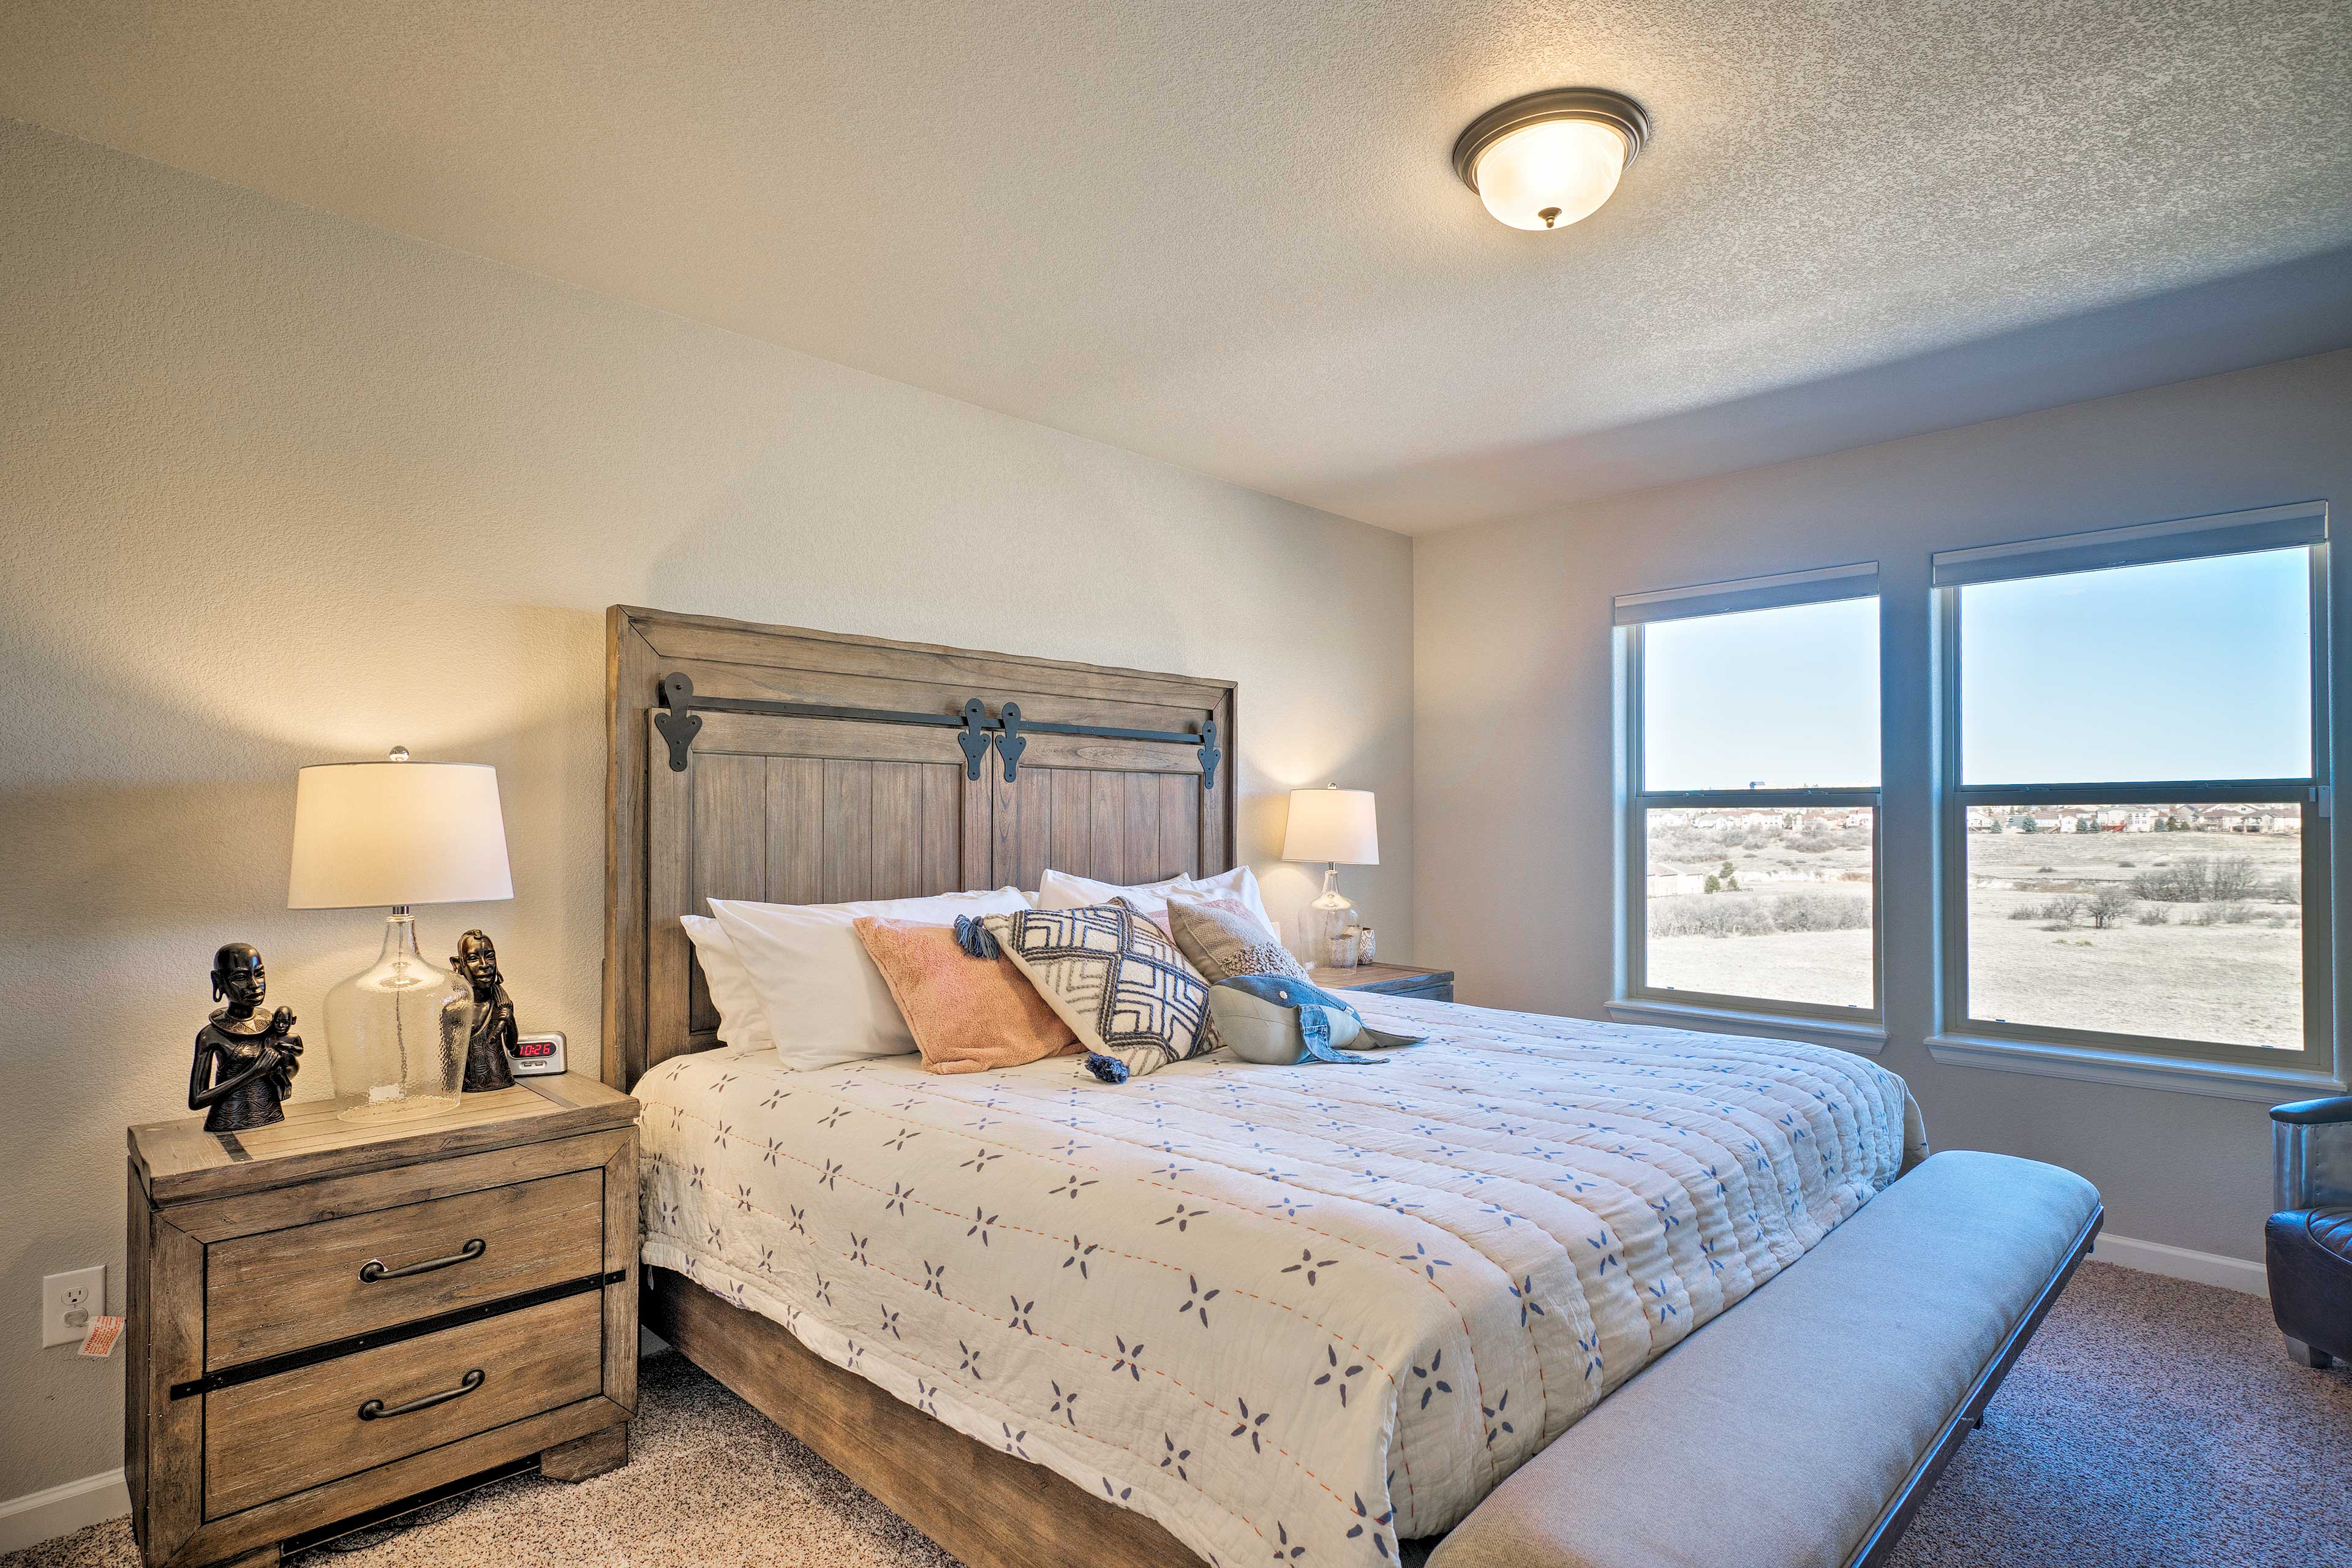 Upstairs, the master bedroom boasts a luxurious king-sized bed.